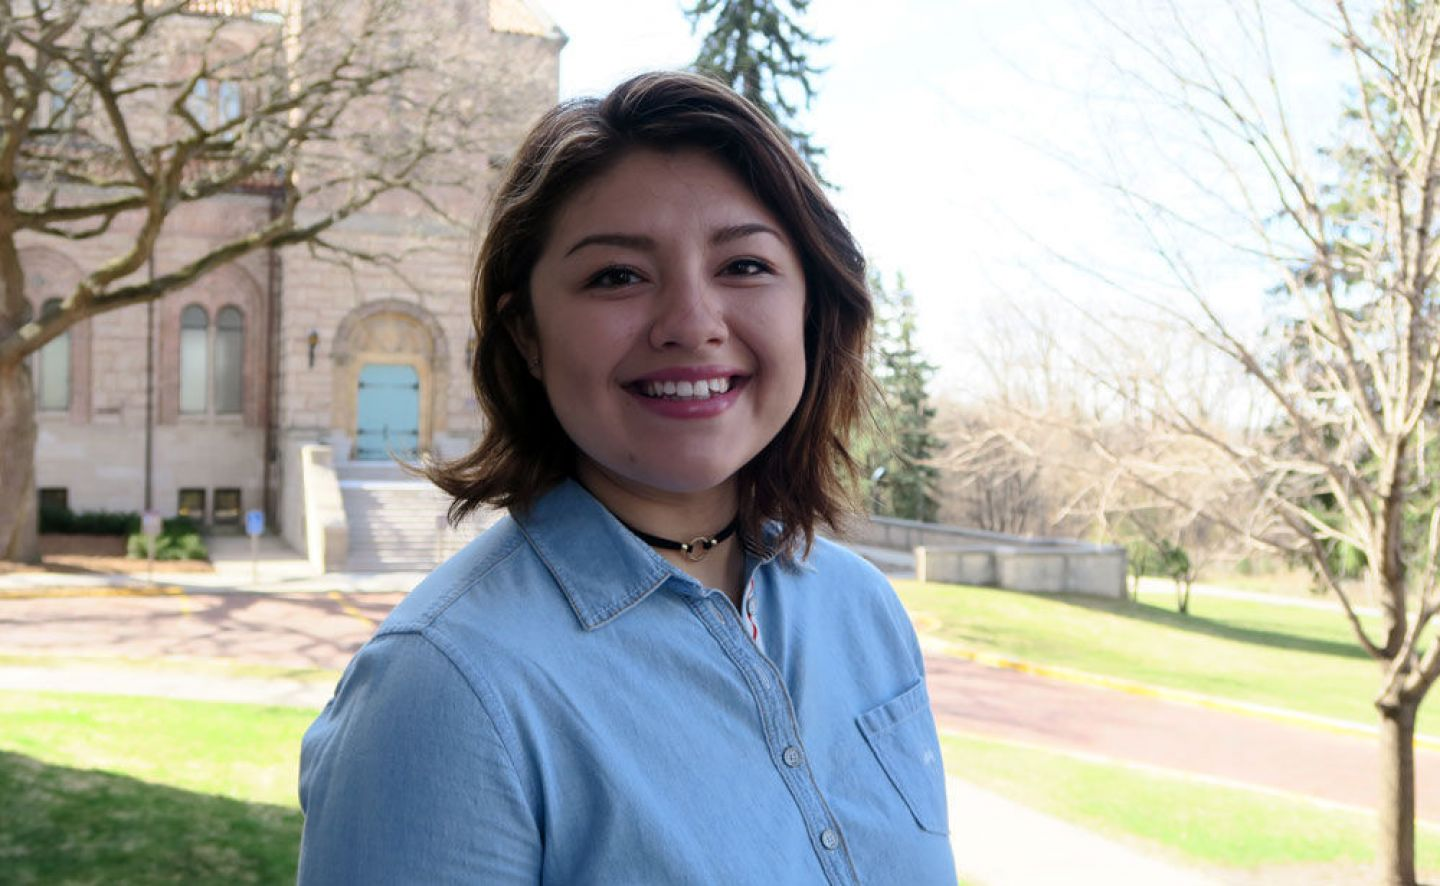 In 2017, political science major Andrea Duarte '19 was recently selected as one of six Minnesota private college students to receive the prestigious $16,500 Phillips Scholarship. She aims to capture Latino immigrant stories to influence public policy efforts and build community understanding. Photo by Sharon Rolenc